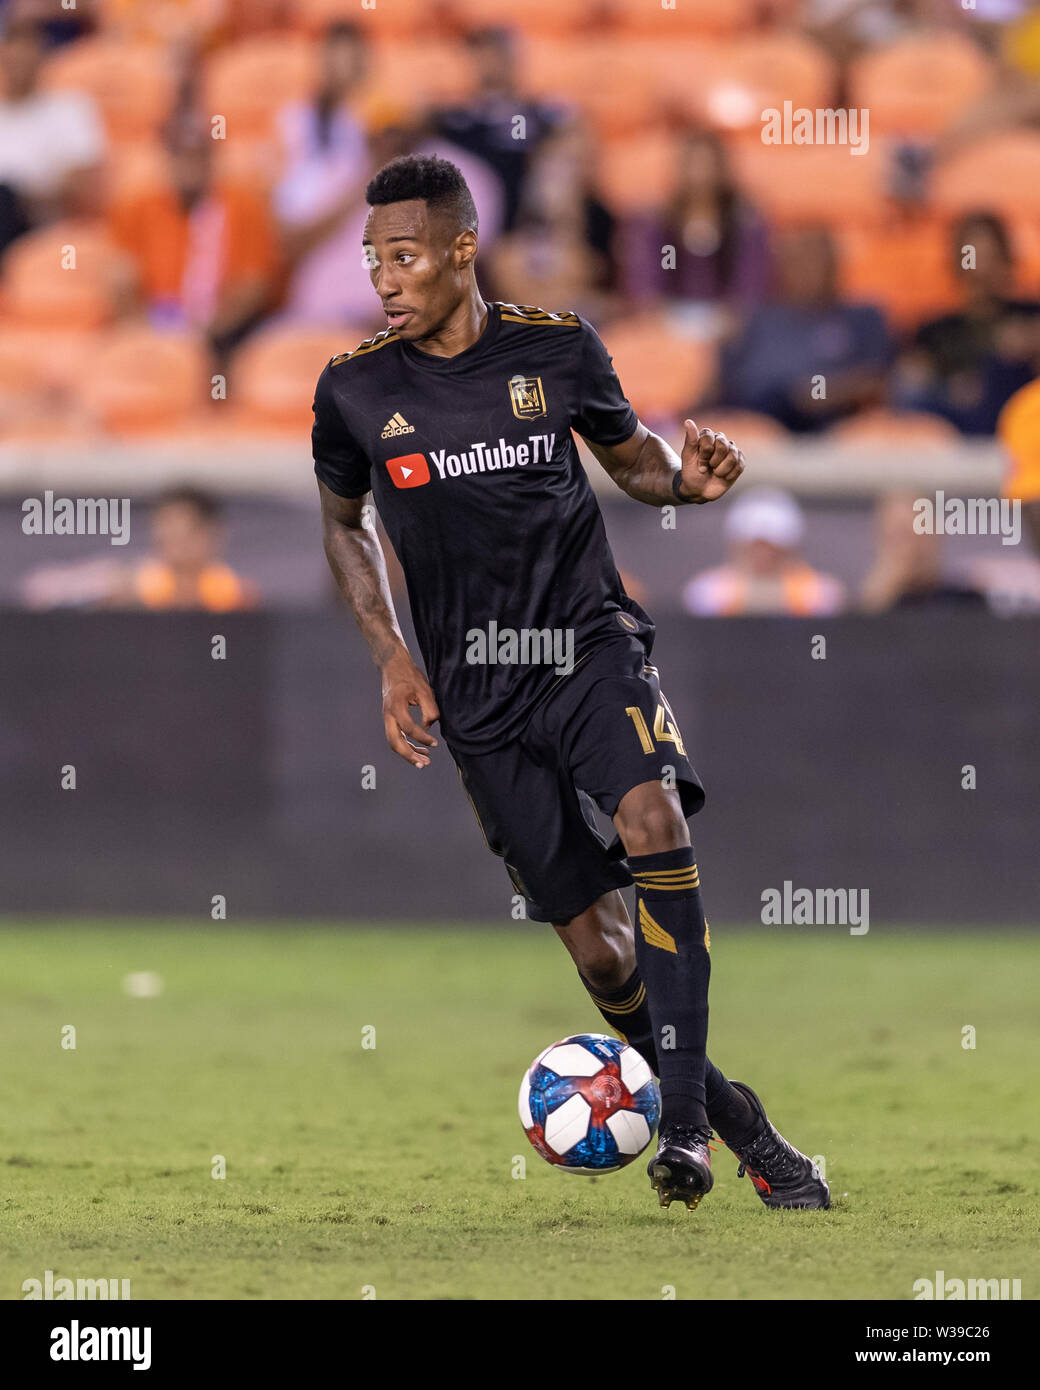 Houston, Texas, USA. 12th July, 2019. Los Angeles FC midfielder Mark-Anthony Kaye (14) during a match between Los Angeles FC and Houston Dynamo at BBVA Stadium in Houston, Texas. The final LAFC wins 3-1. Maria Lysaker/CSM/Alamy Live News - Stock Image